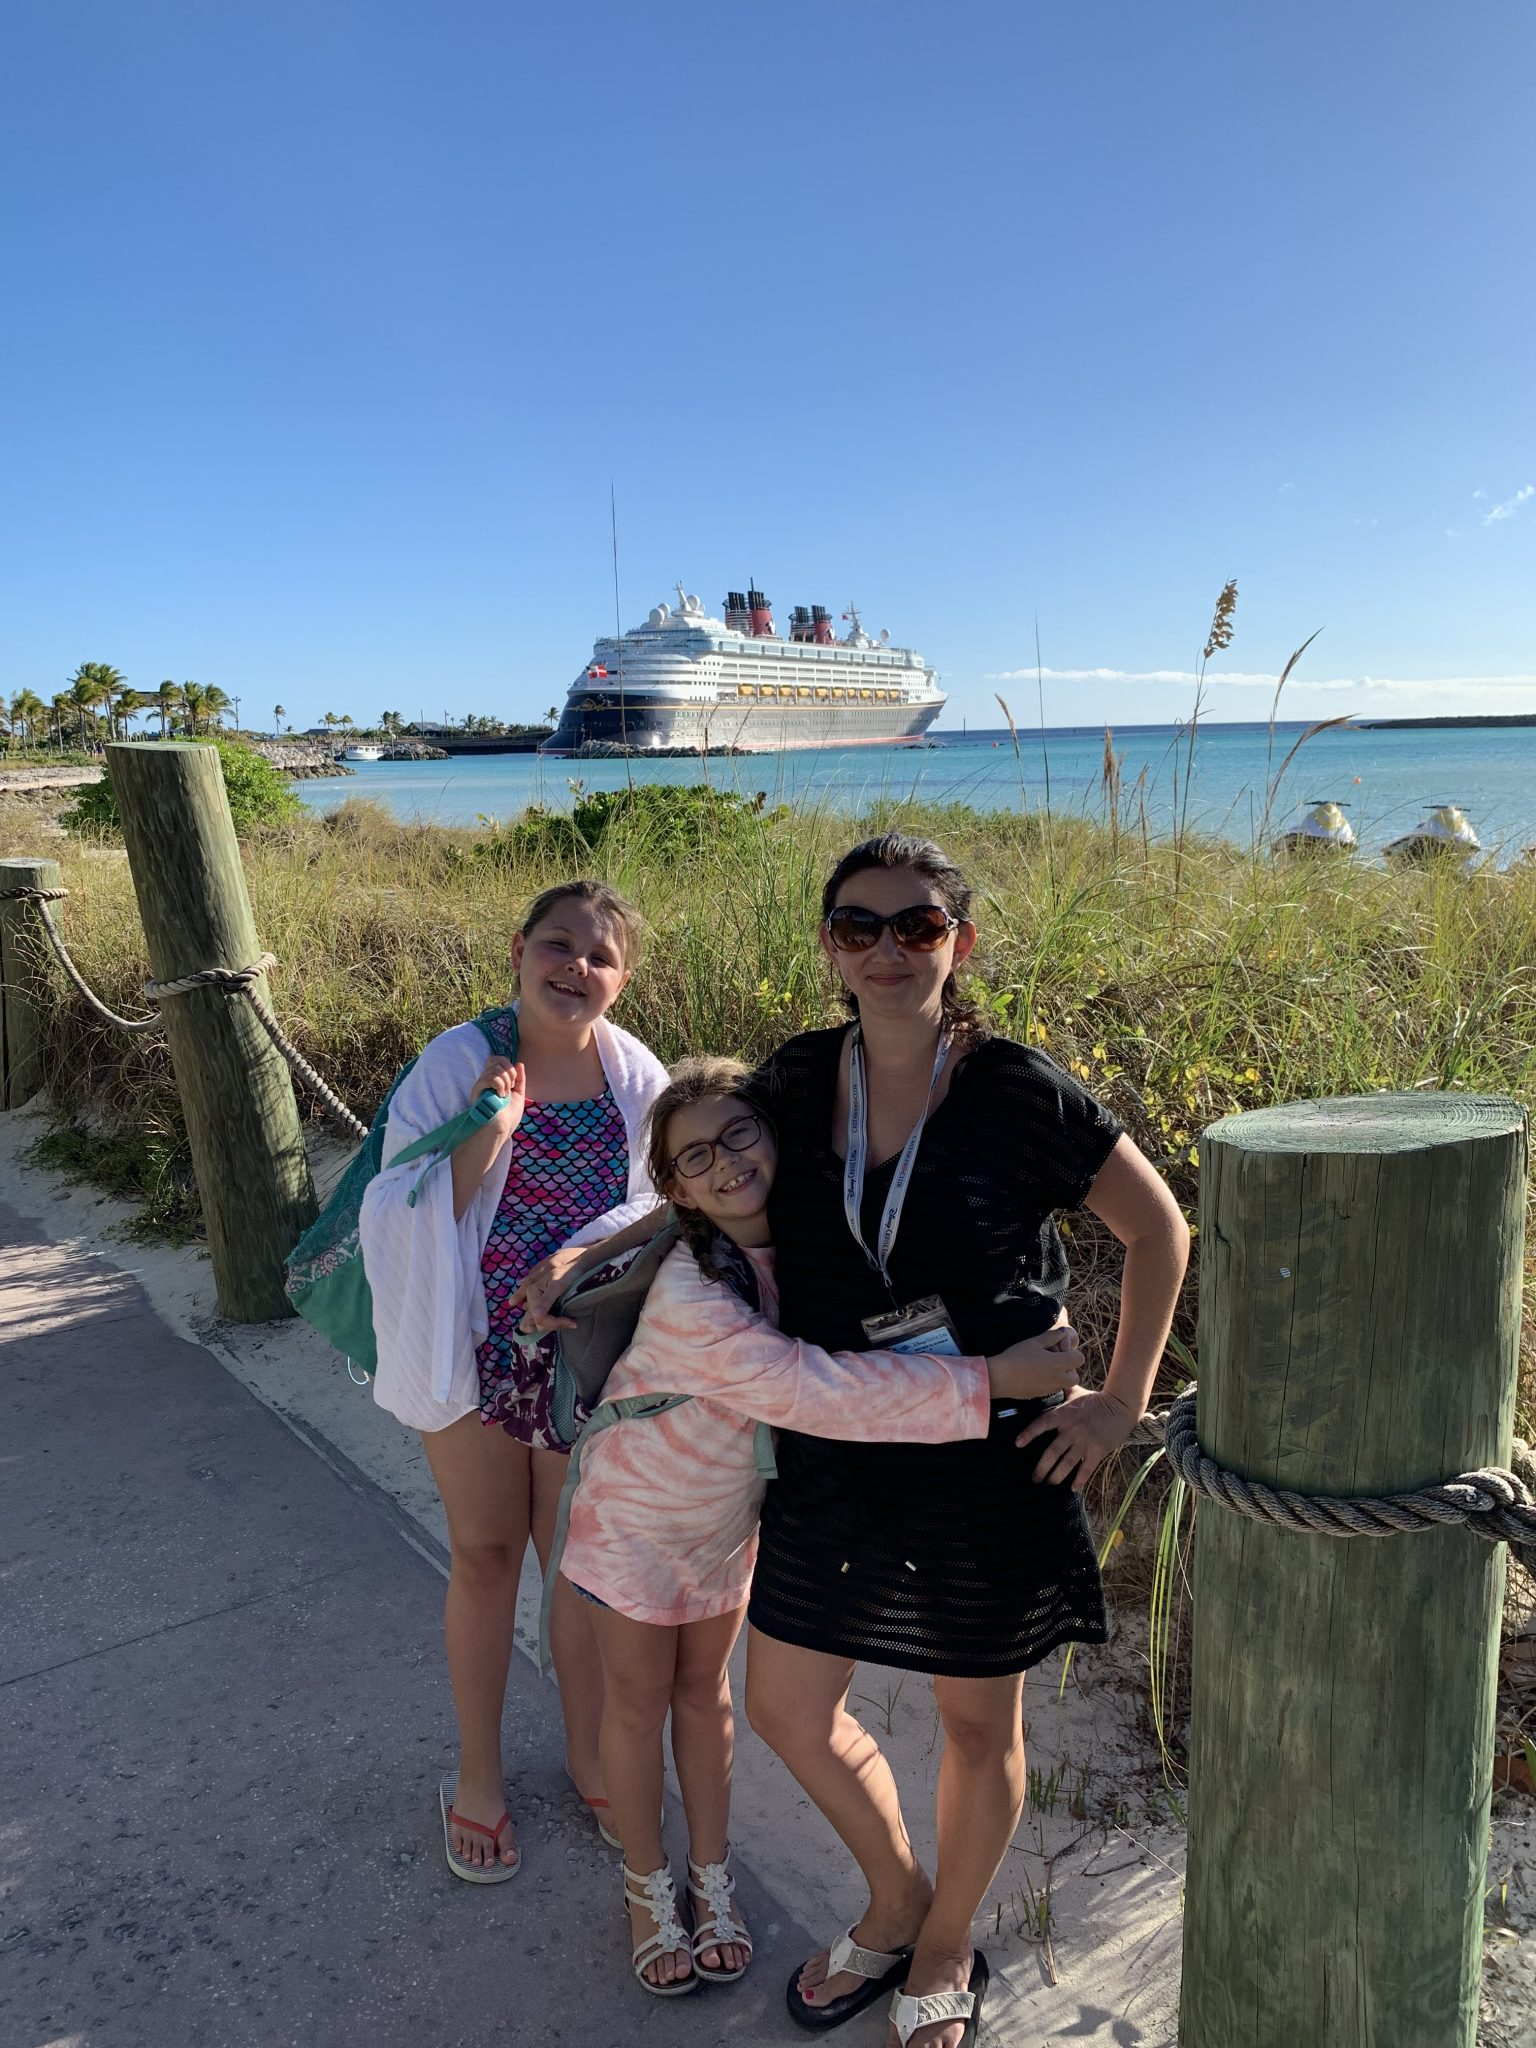 Disney Wonder on Castaway Cay